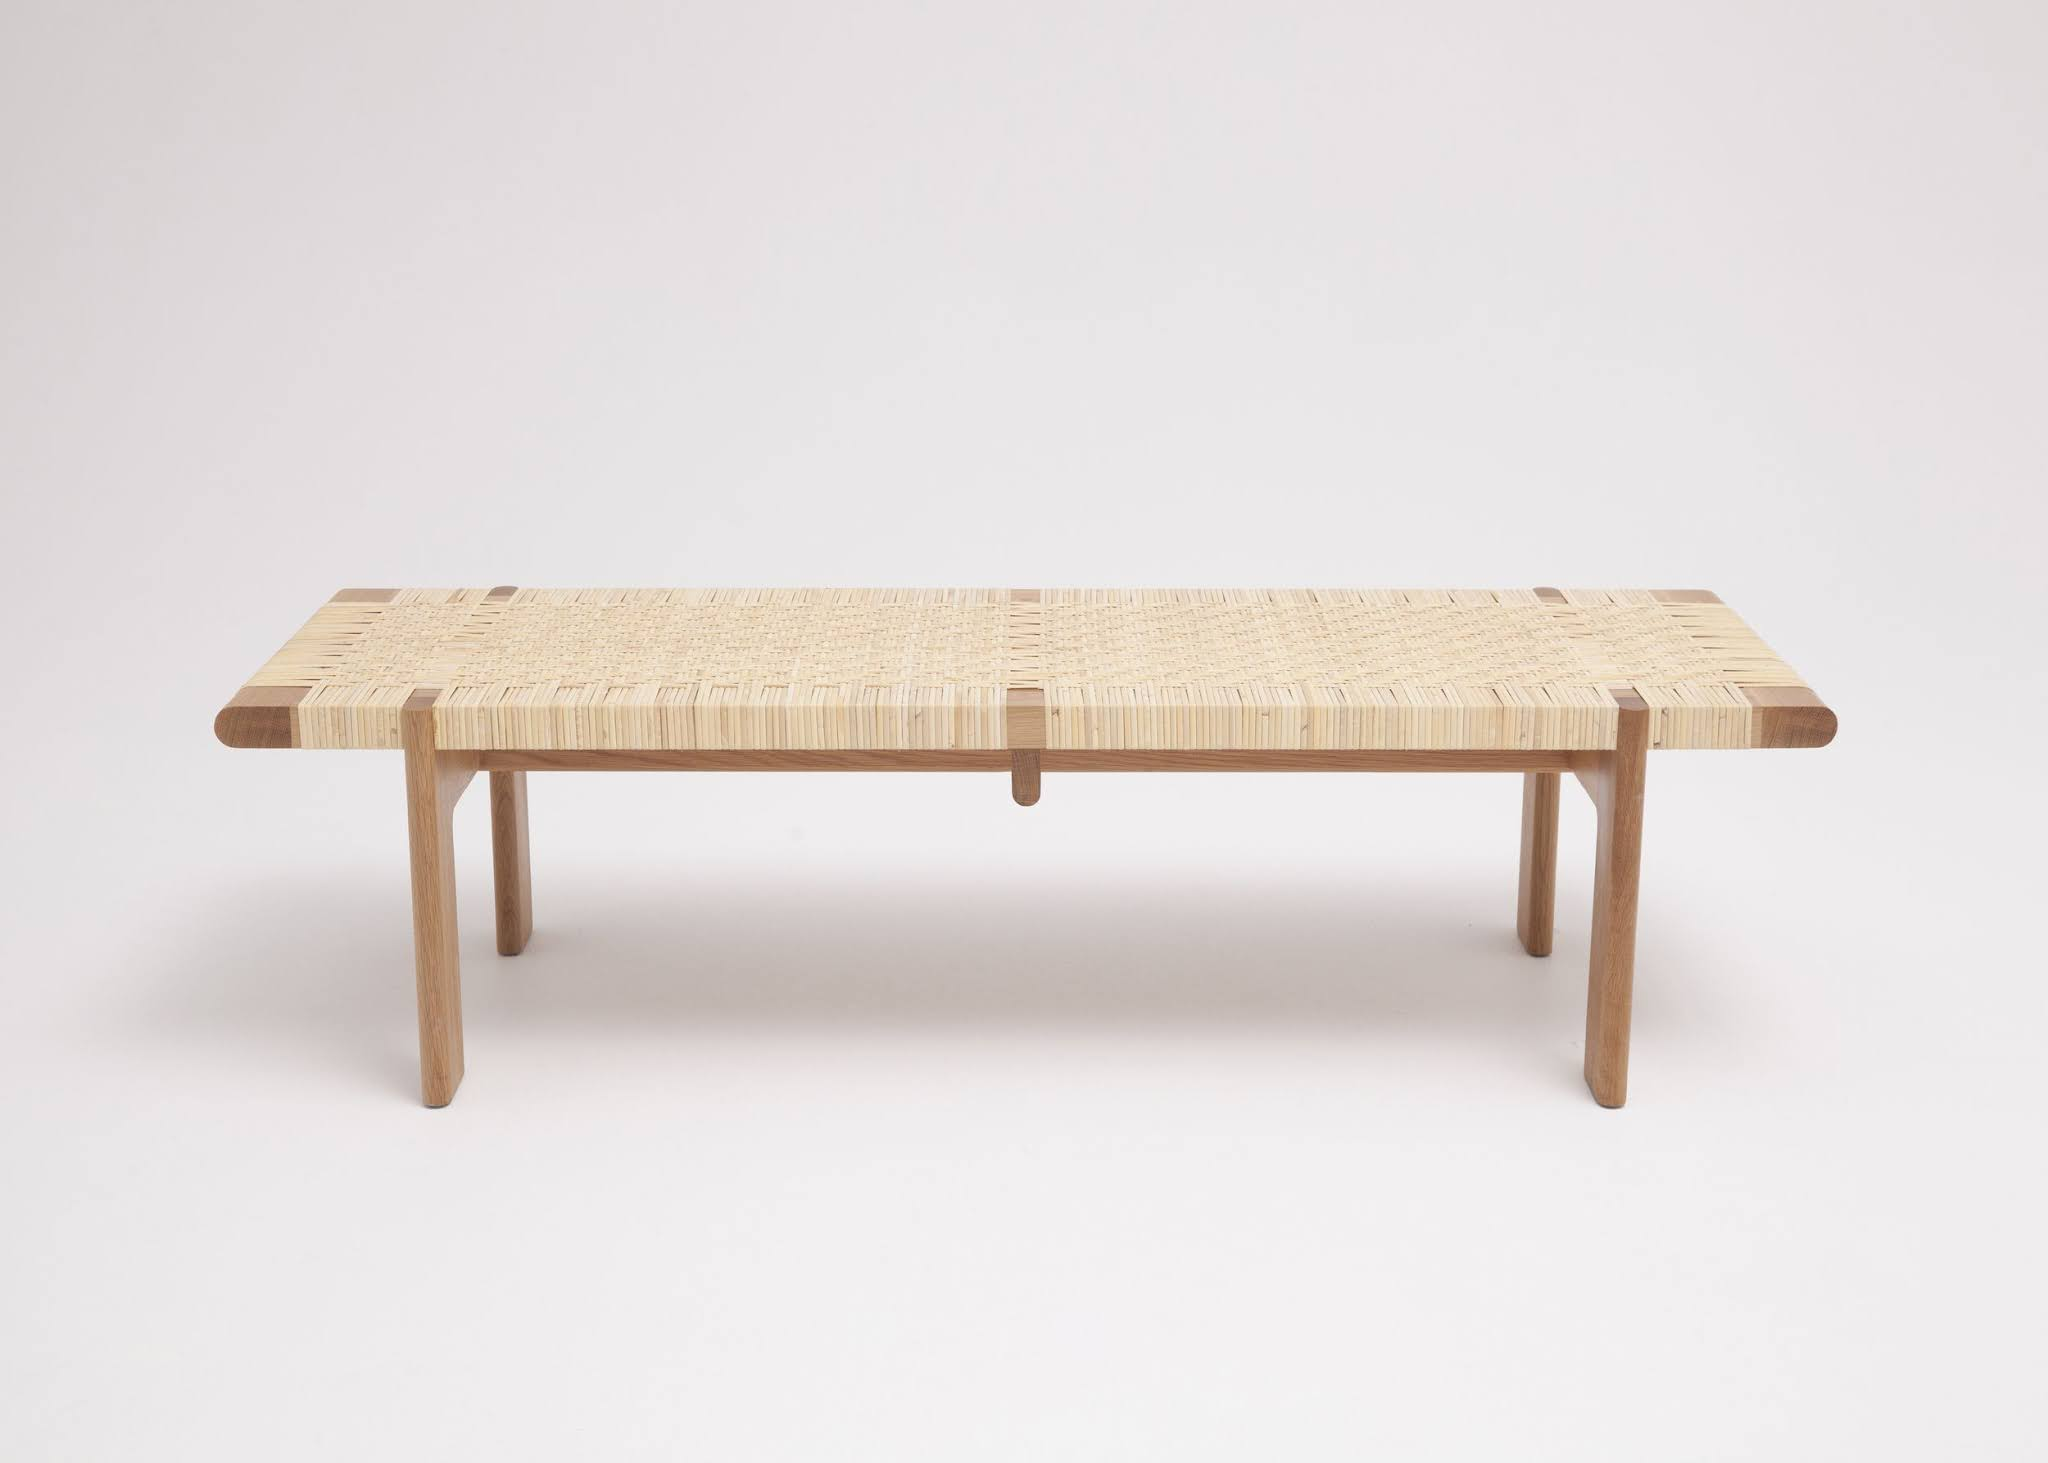 The Wicker Bench in Your Living Room